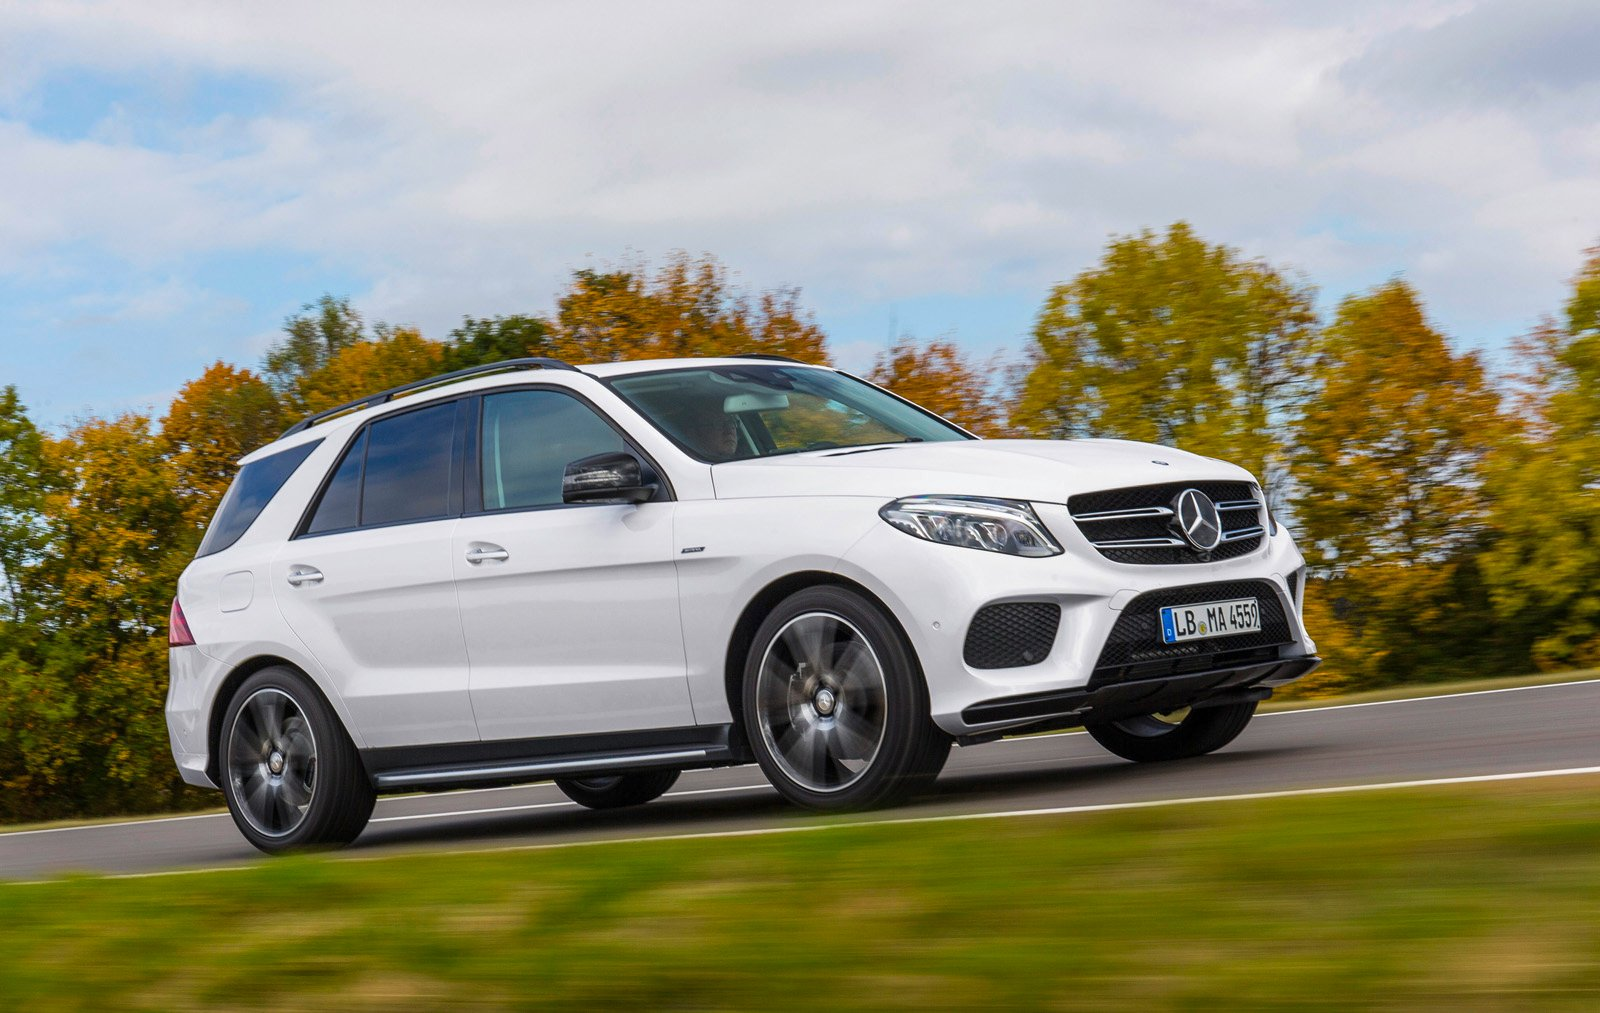 Mercedes Four Matic >> 2016 Mercedes-Benz GLE 450 AMG 4MATIC SUV Makes Debut » AutoGuide.com News